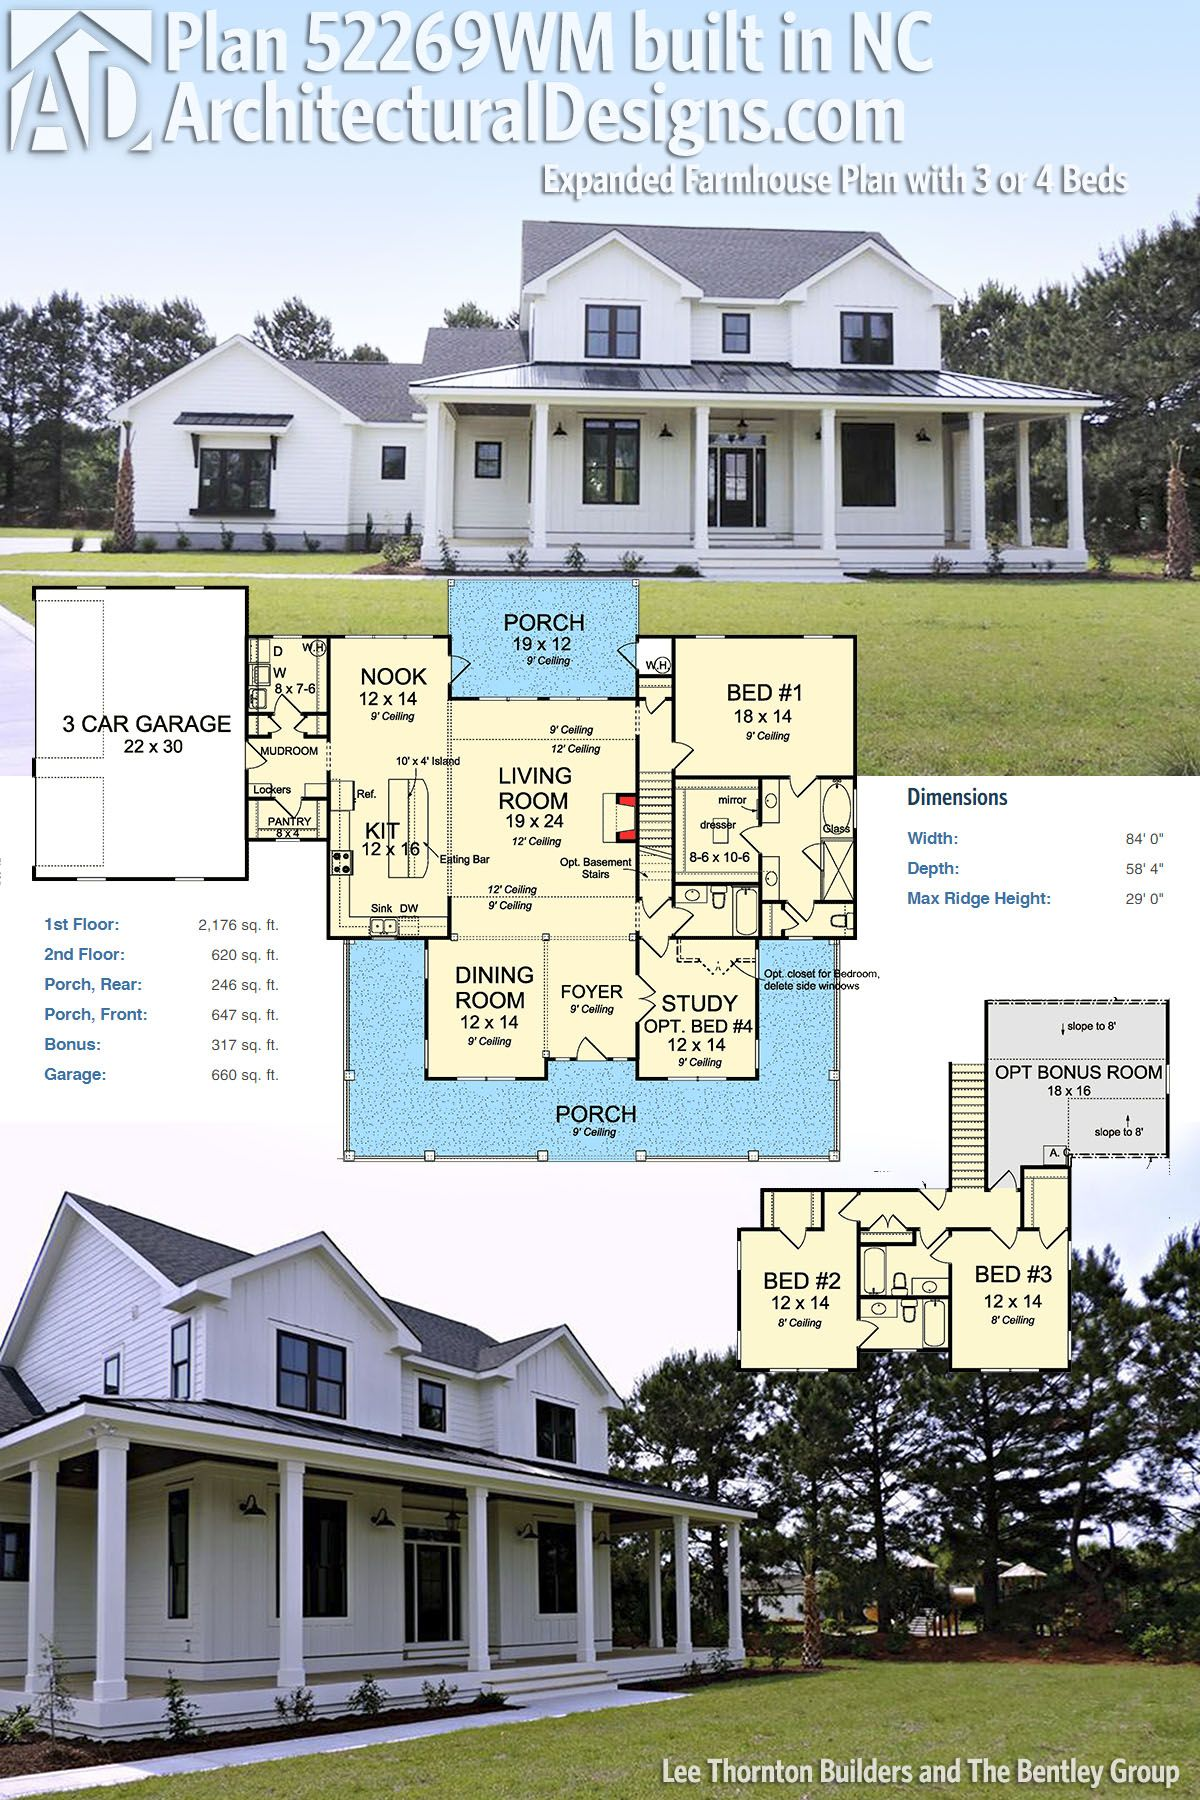 Plan 52269WM: Expanded Farmhouse Plan with 3 or 4 Beds | Pinterest ...